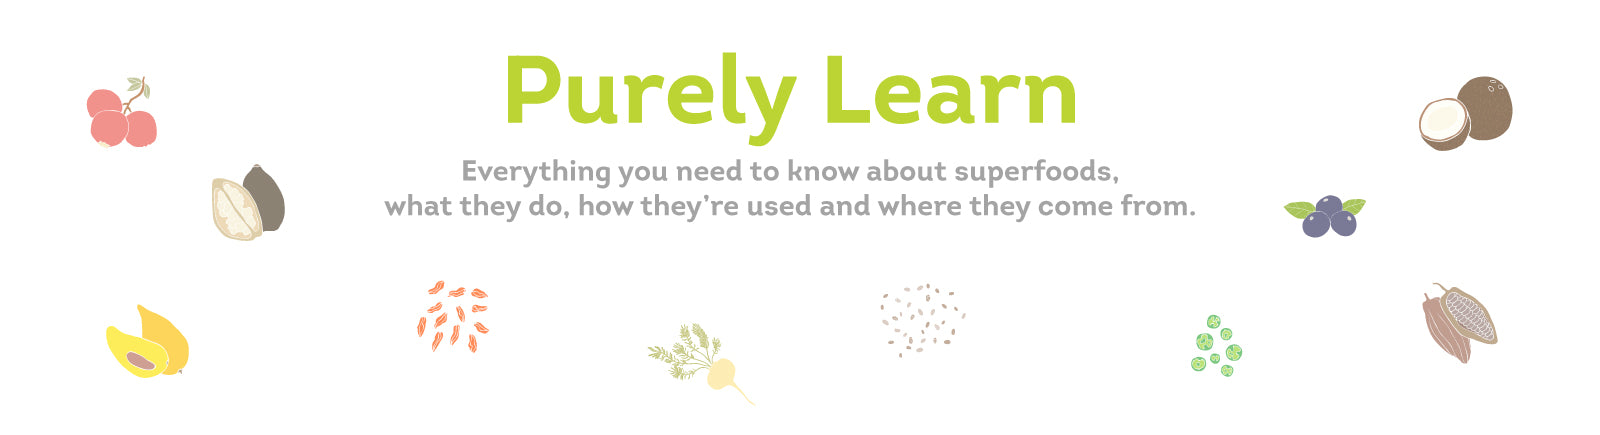 Purely Learn: Everything you need to know about superfoods, what they do, how they're used, and where they're from